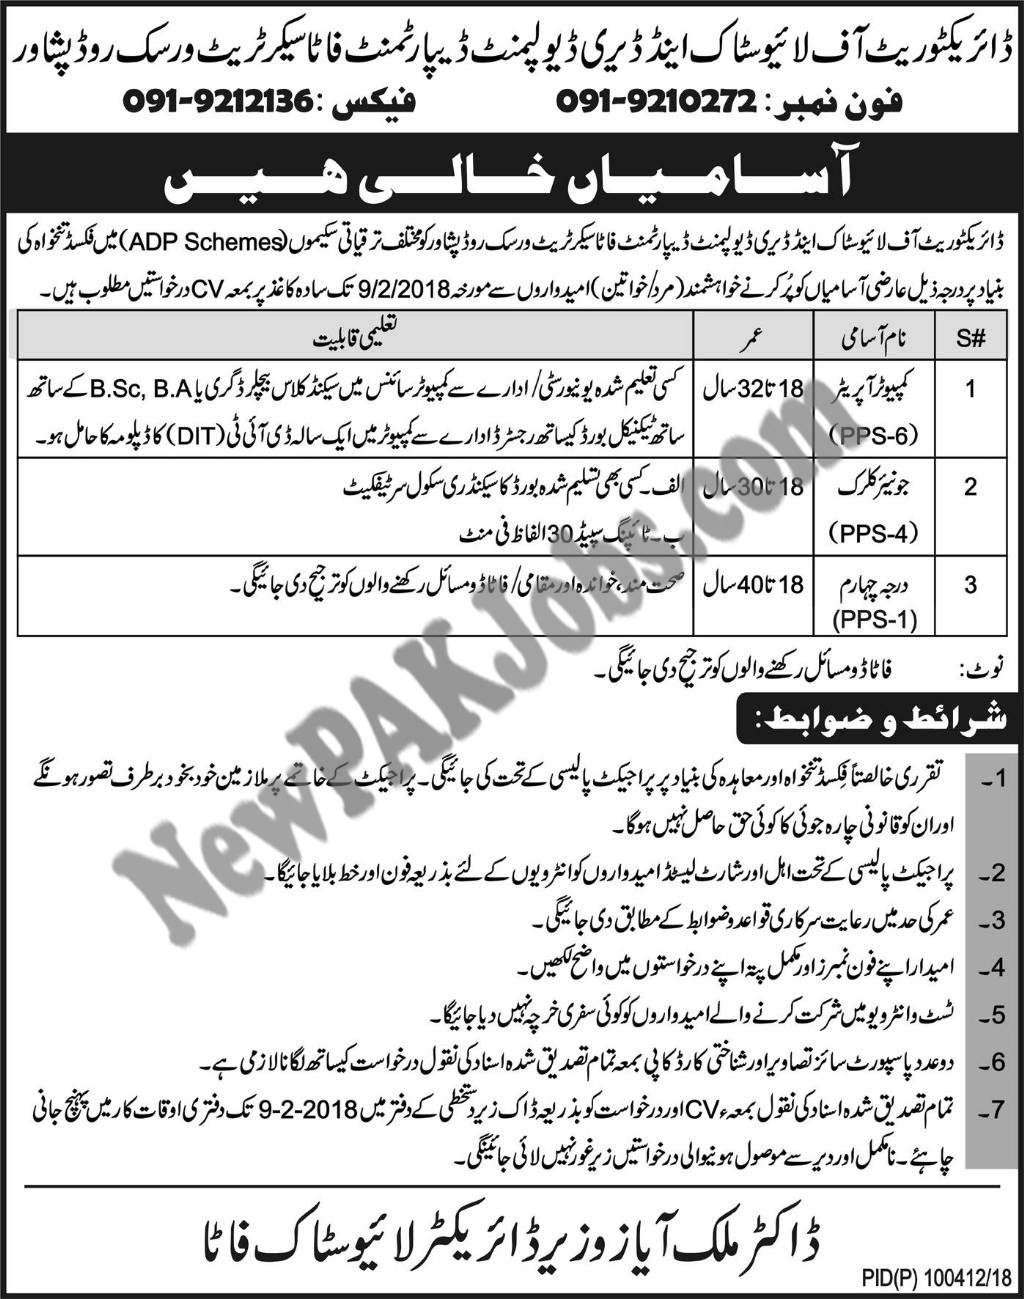 Directorate of Livestock and Dairy Development Department, FATA & Peshawar Latest Jobs